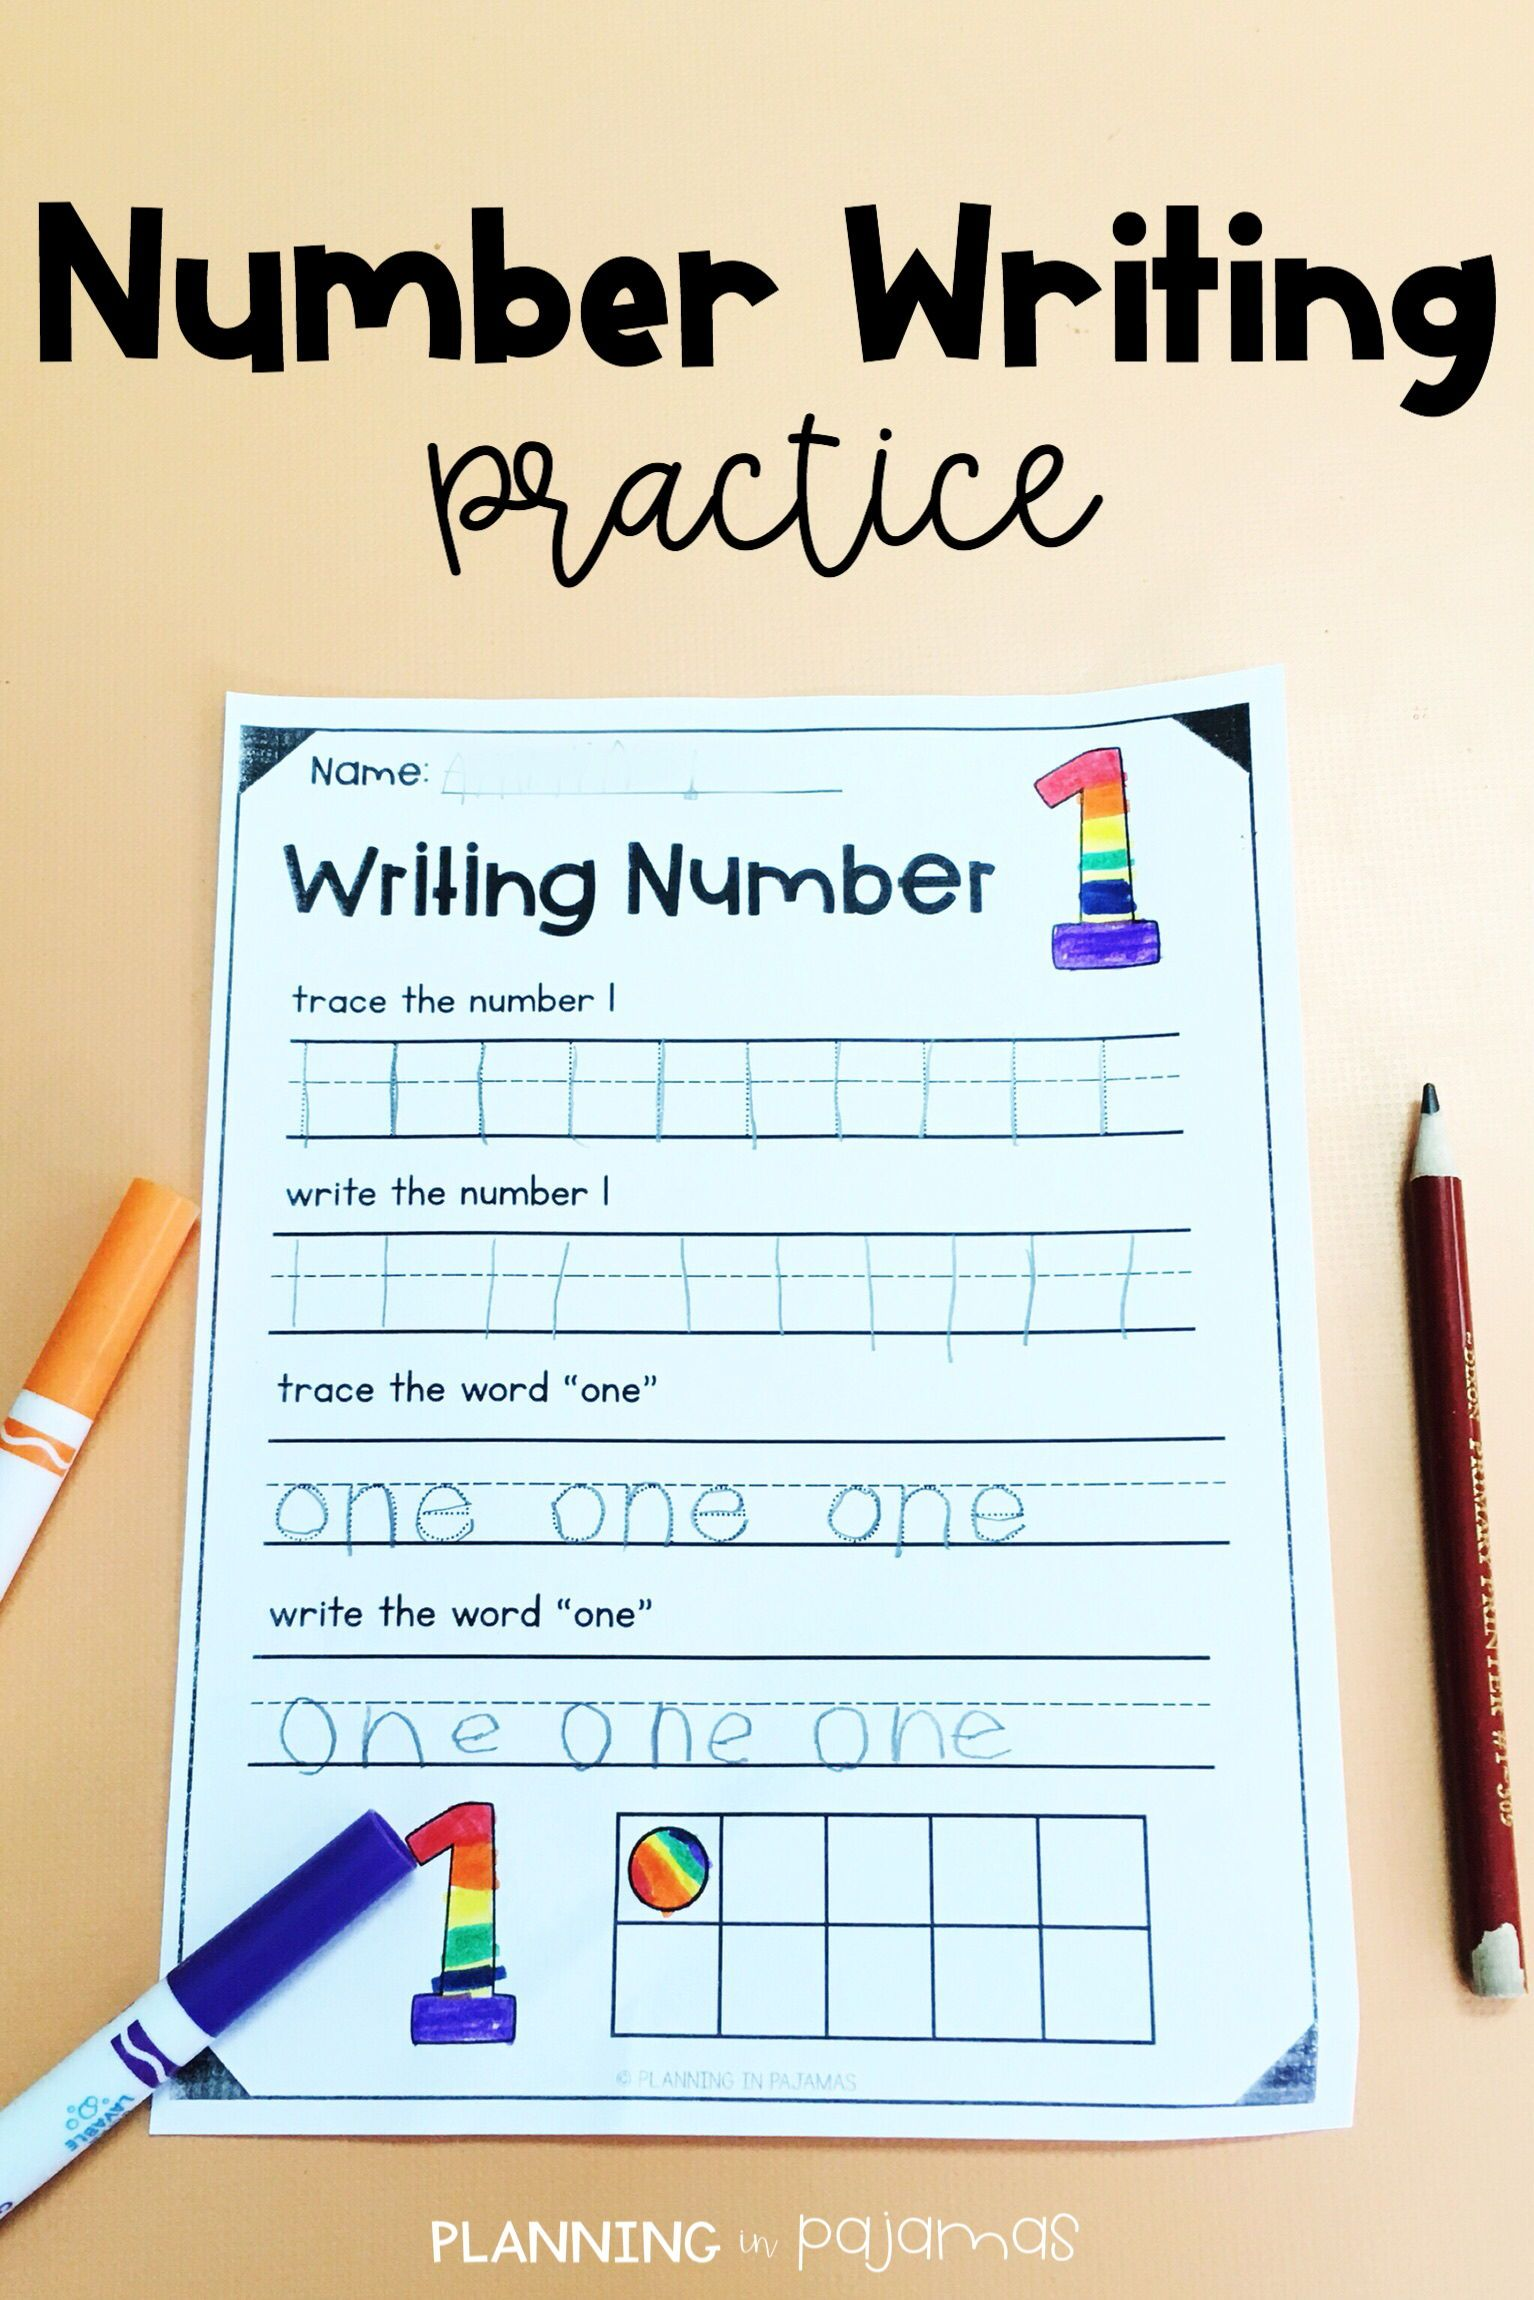 Number Writing Practice 1 10